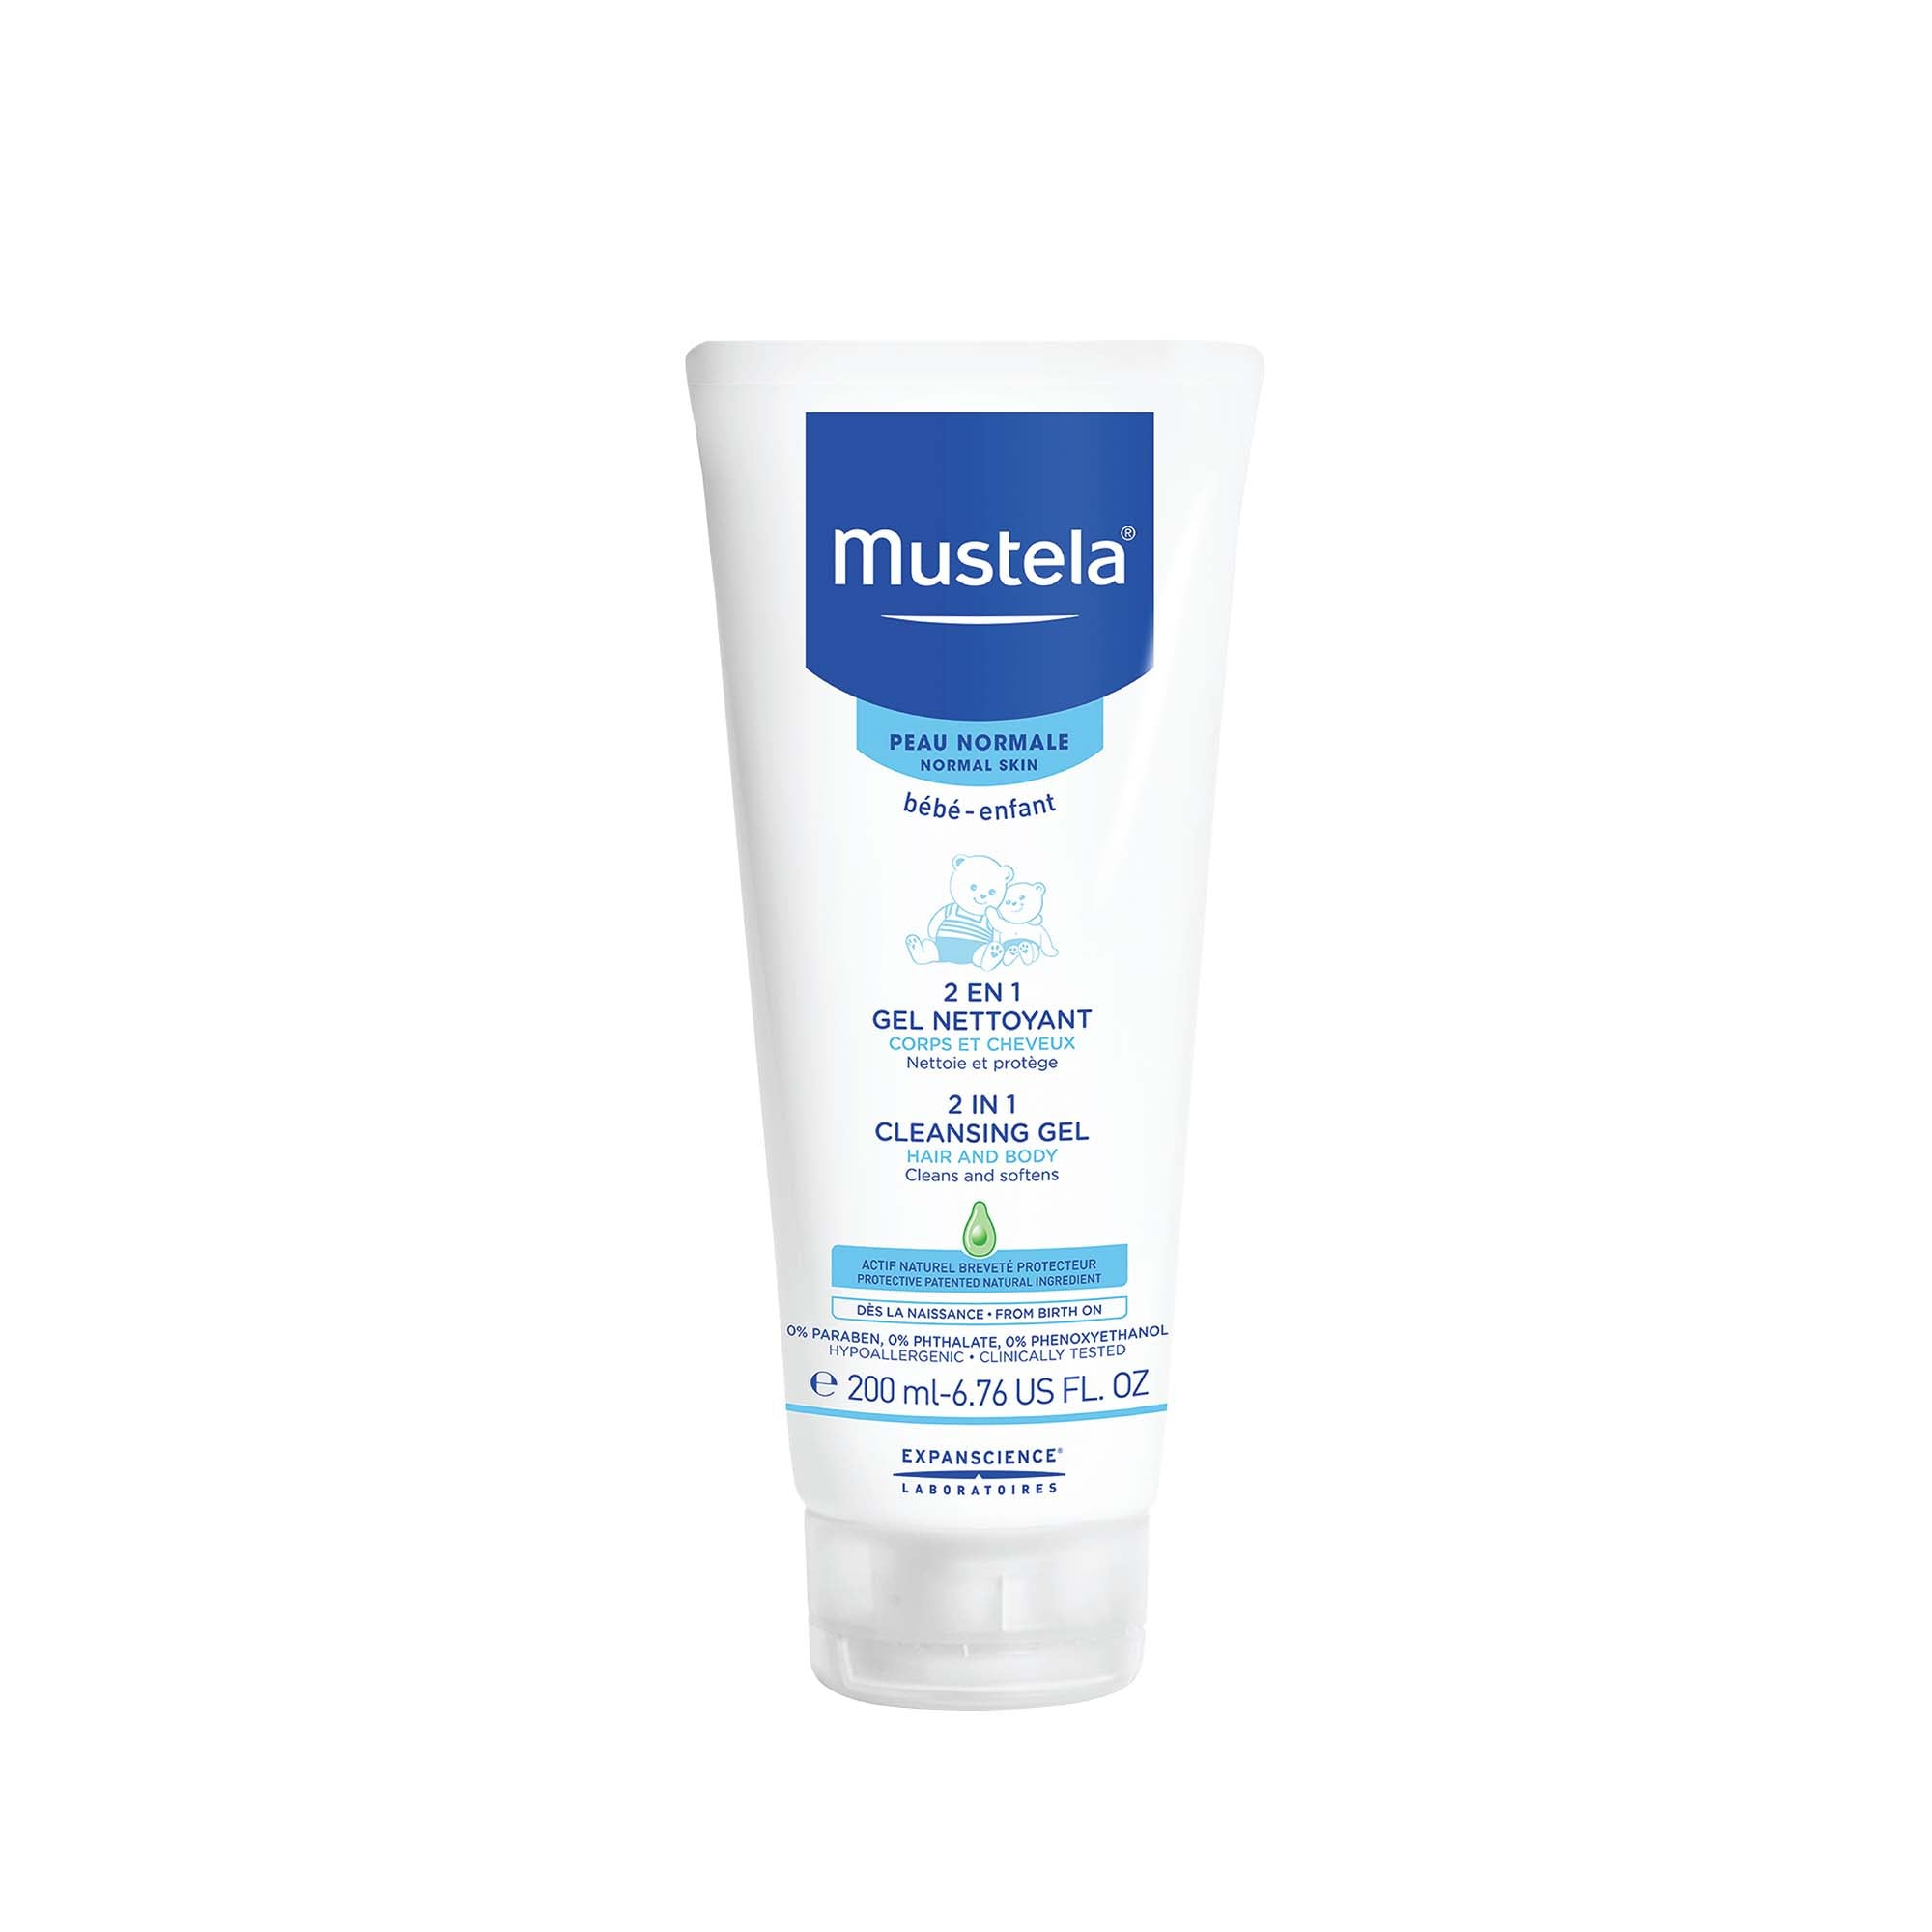 Mustela 2 in 1 Cleansing Gel 200ml (Normal Skin)